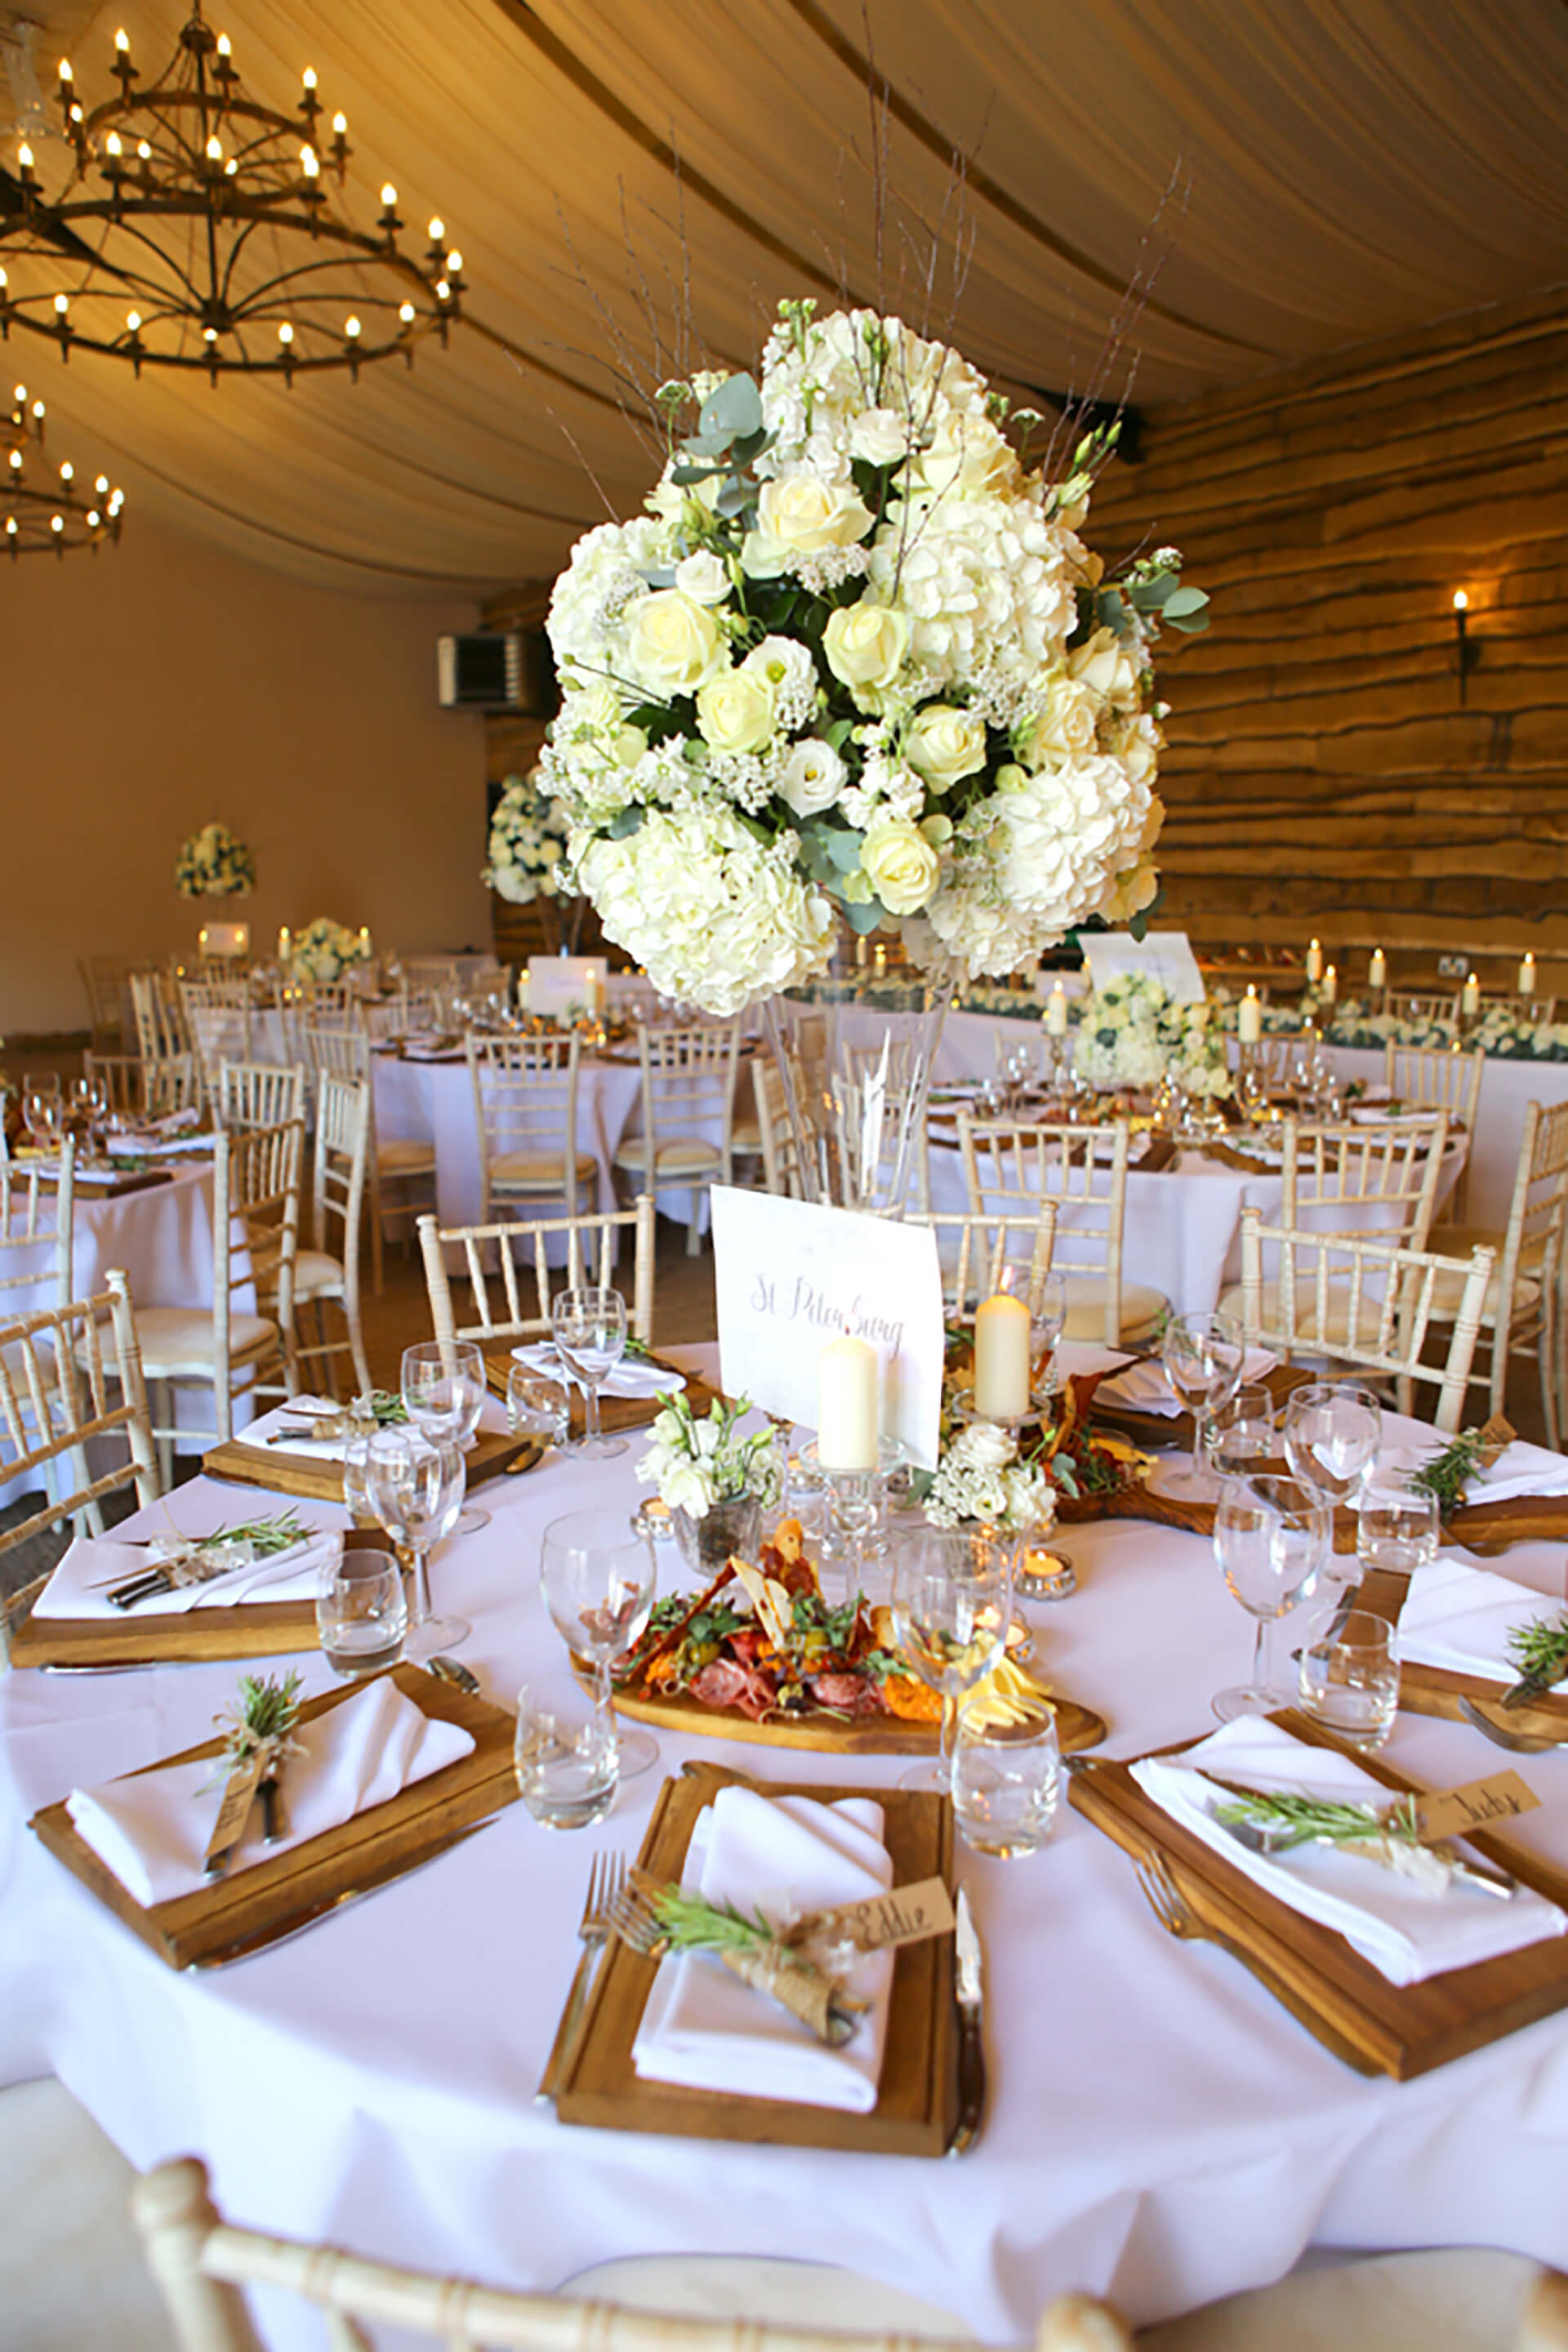 Rebecca and Tebo's amazing centrepieces. Photo by Simon stock.